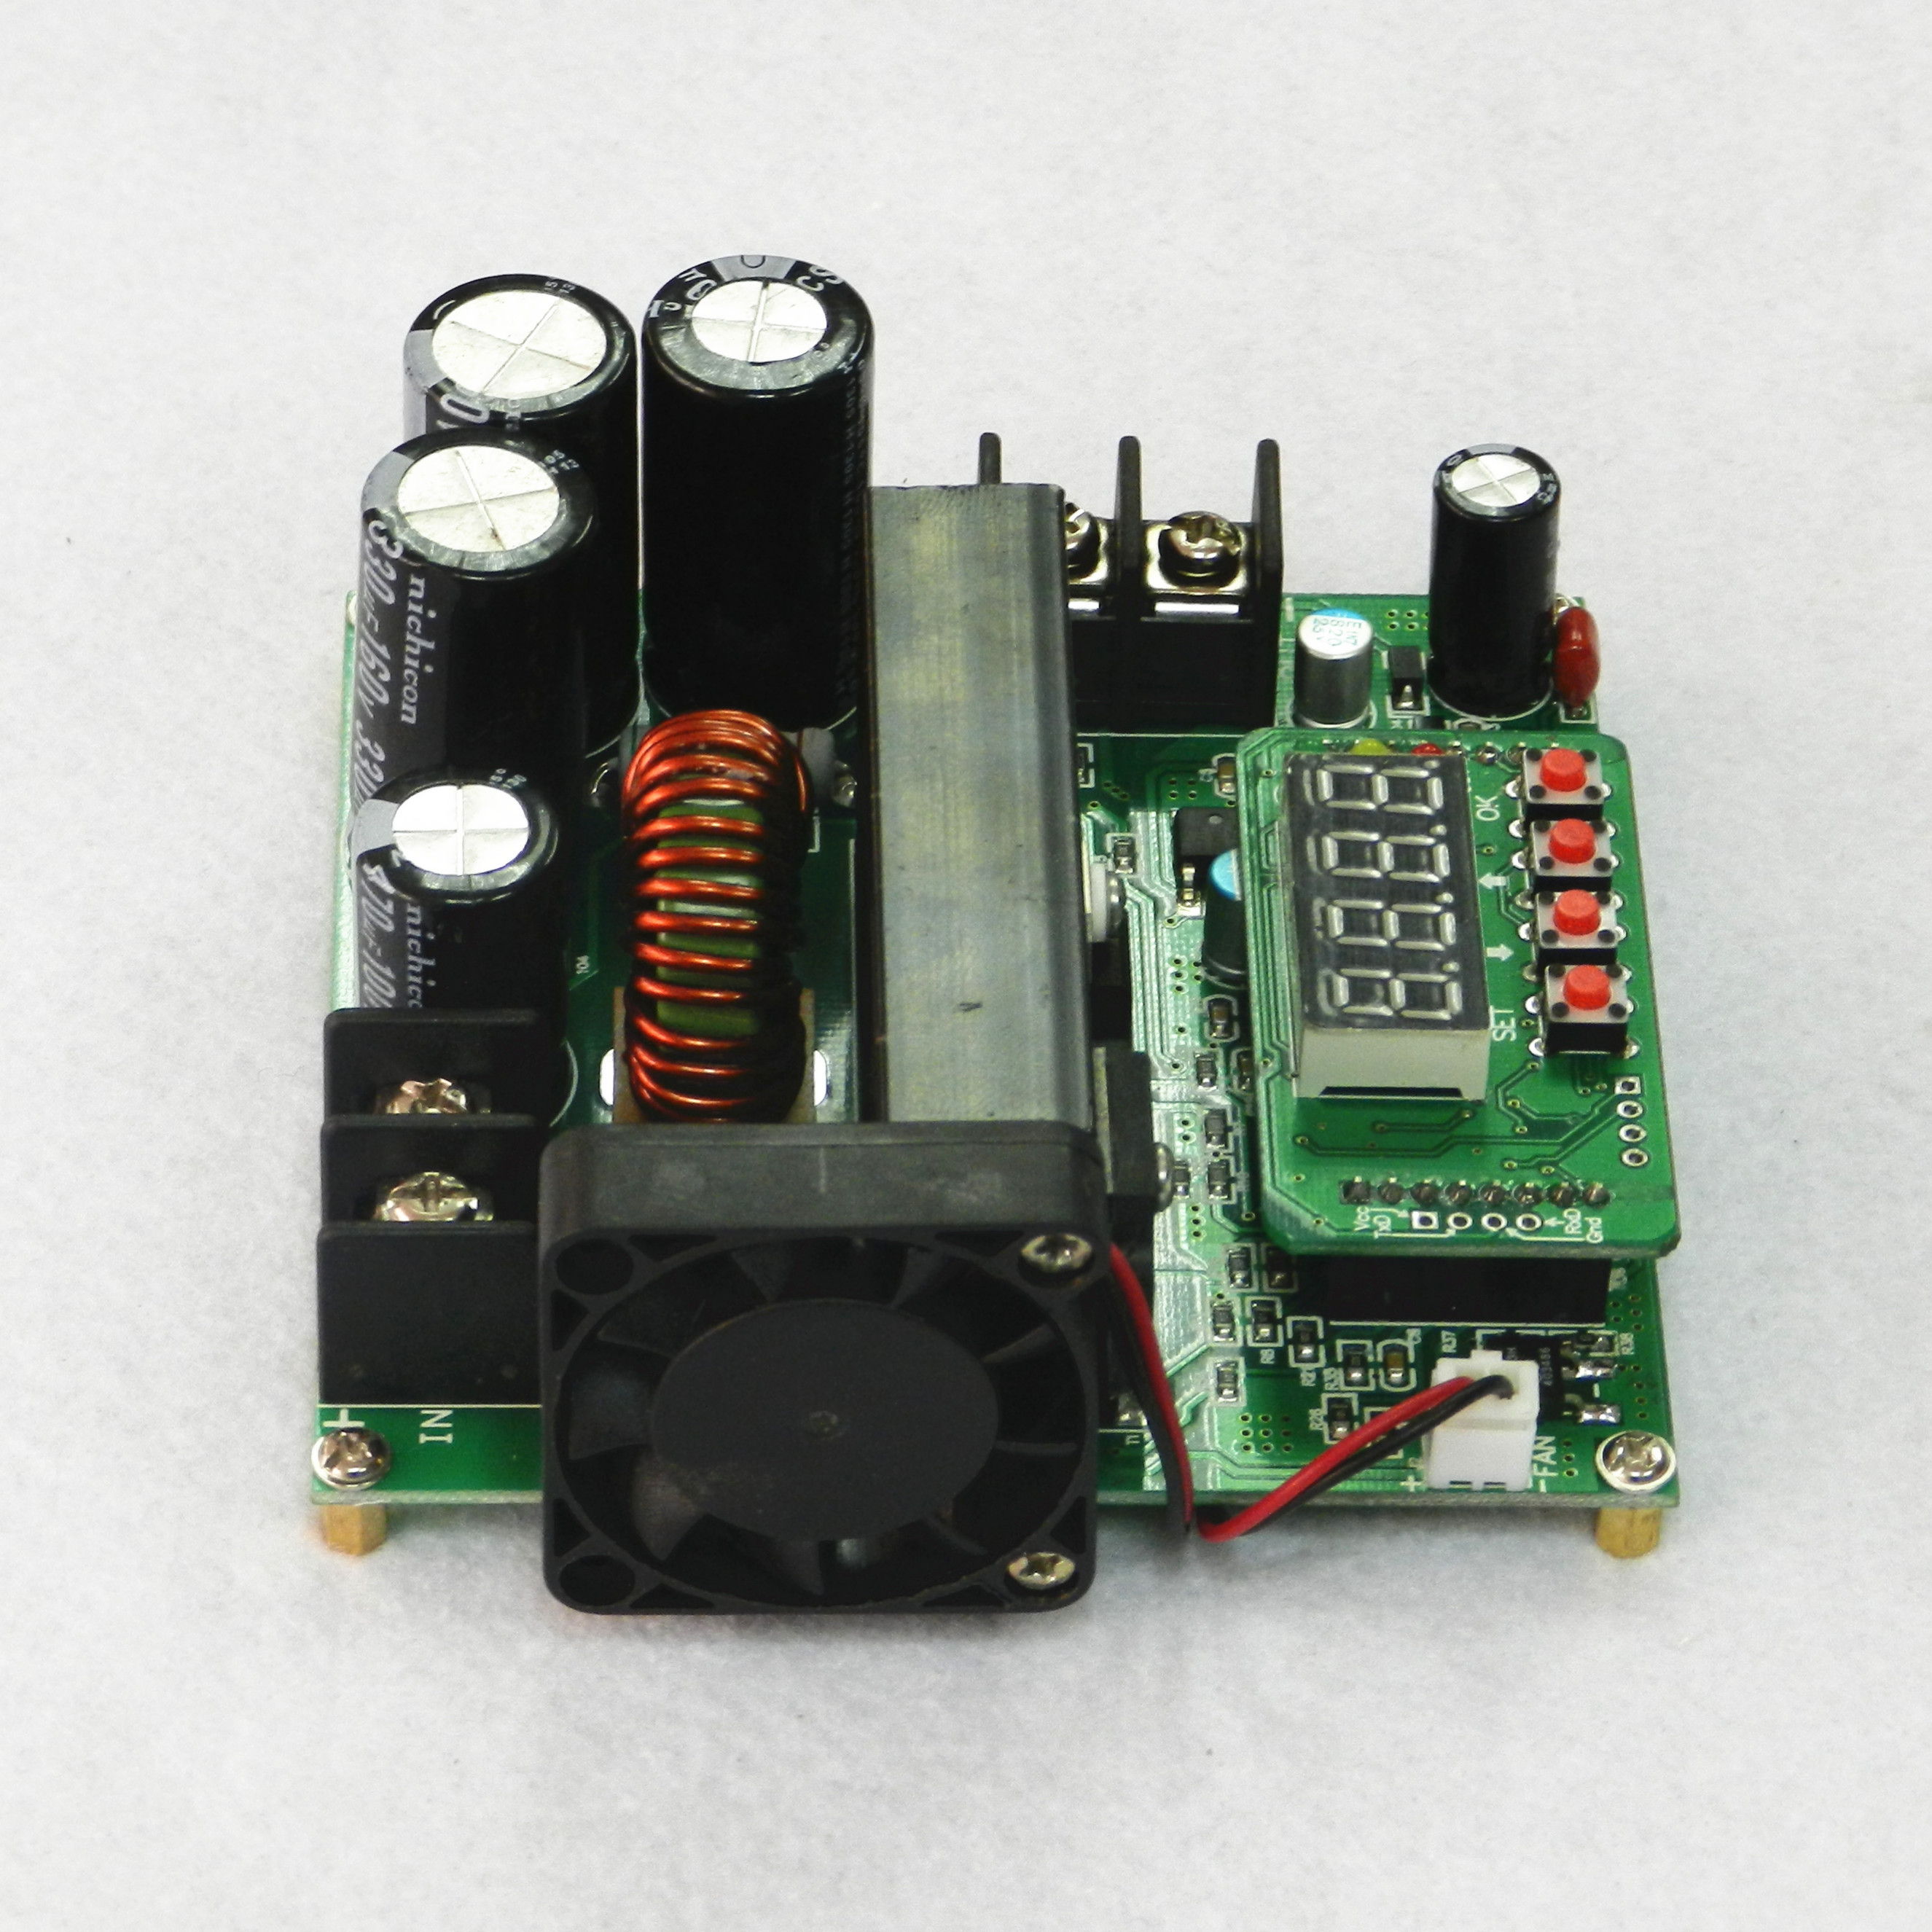 Usd 3448 B900w Cnc Dc Constant Current Power Supply Adjustable Variable Circuit Together With Lightbox Moreview Prevnext